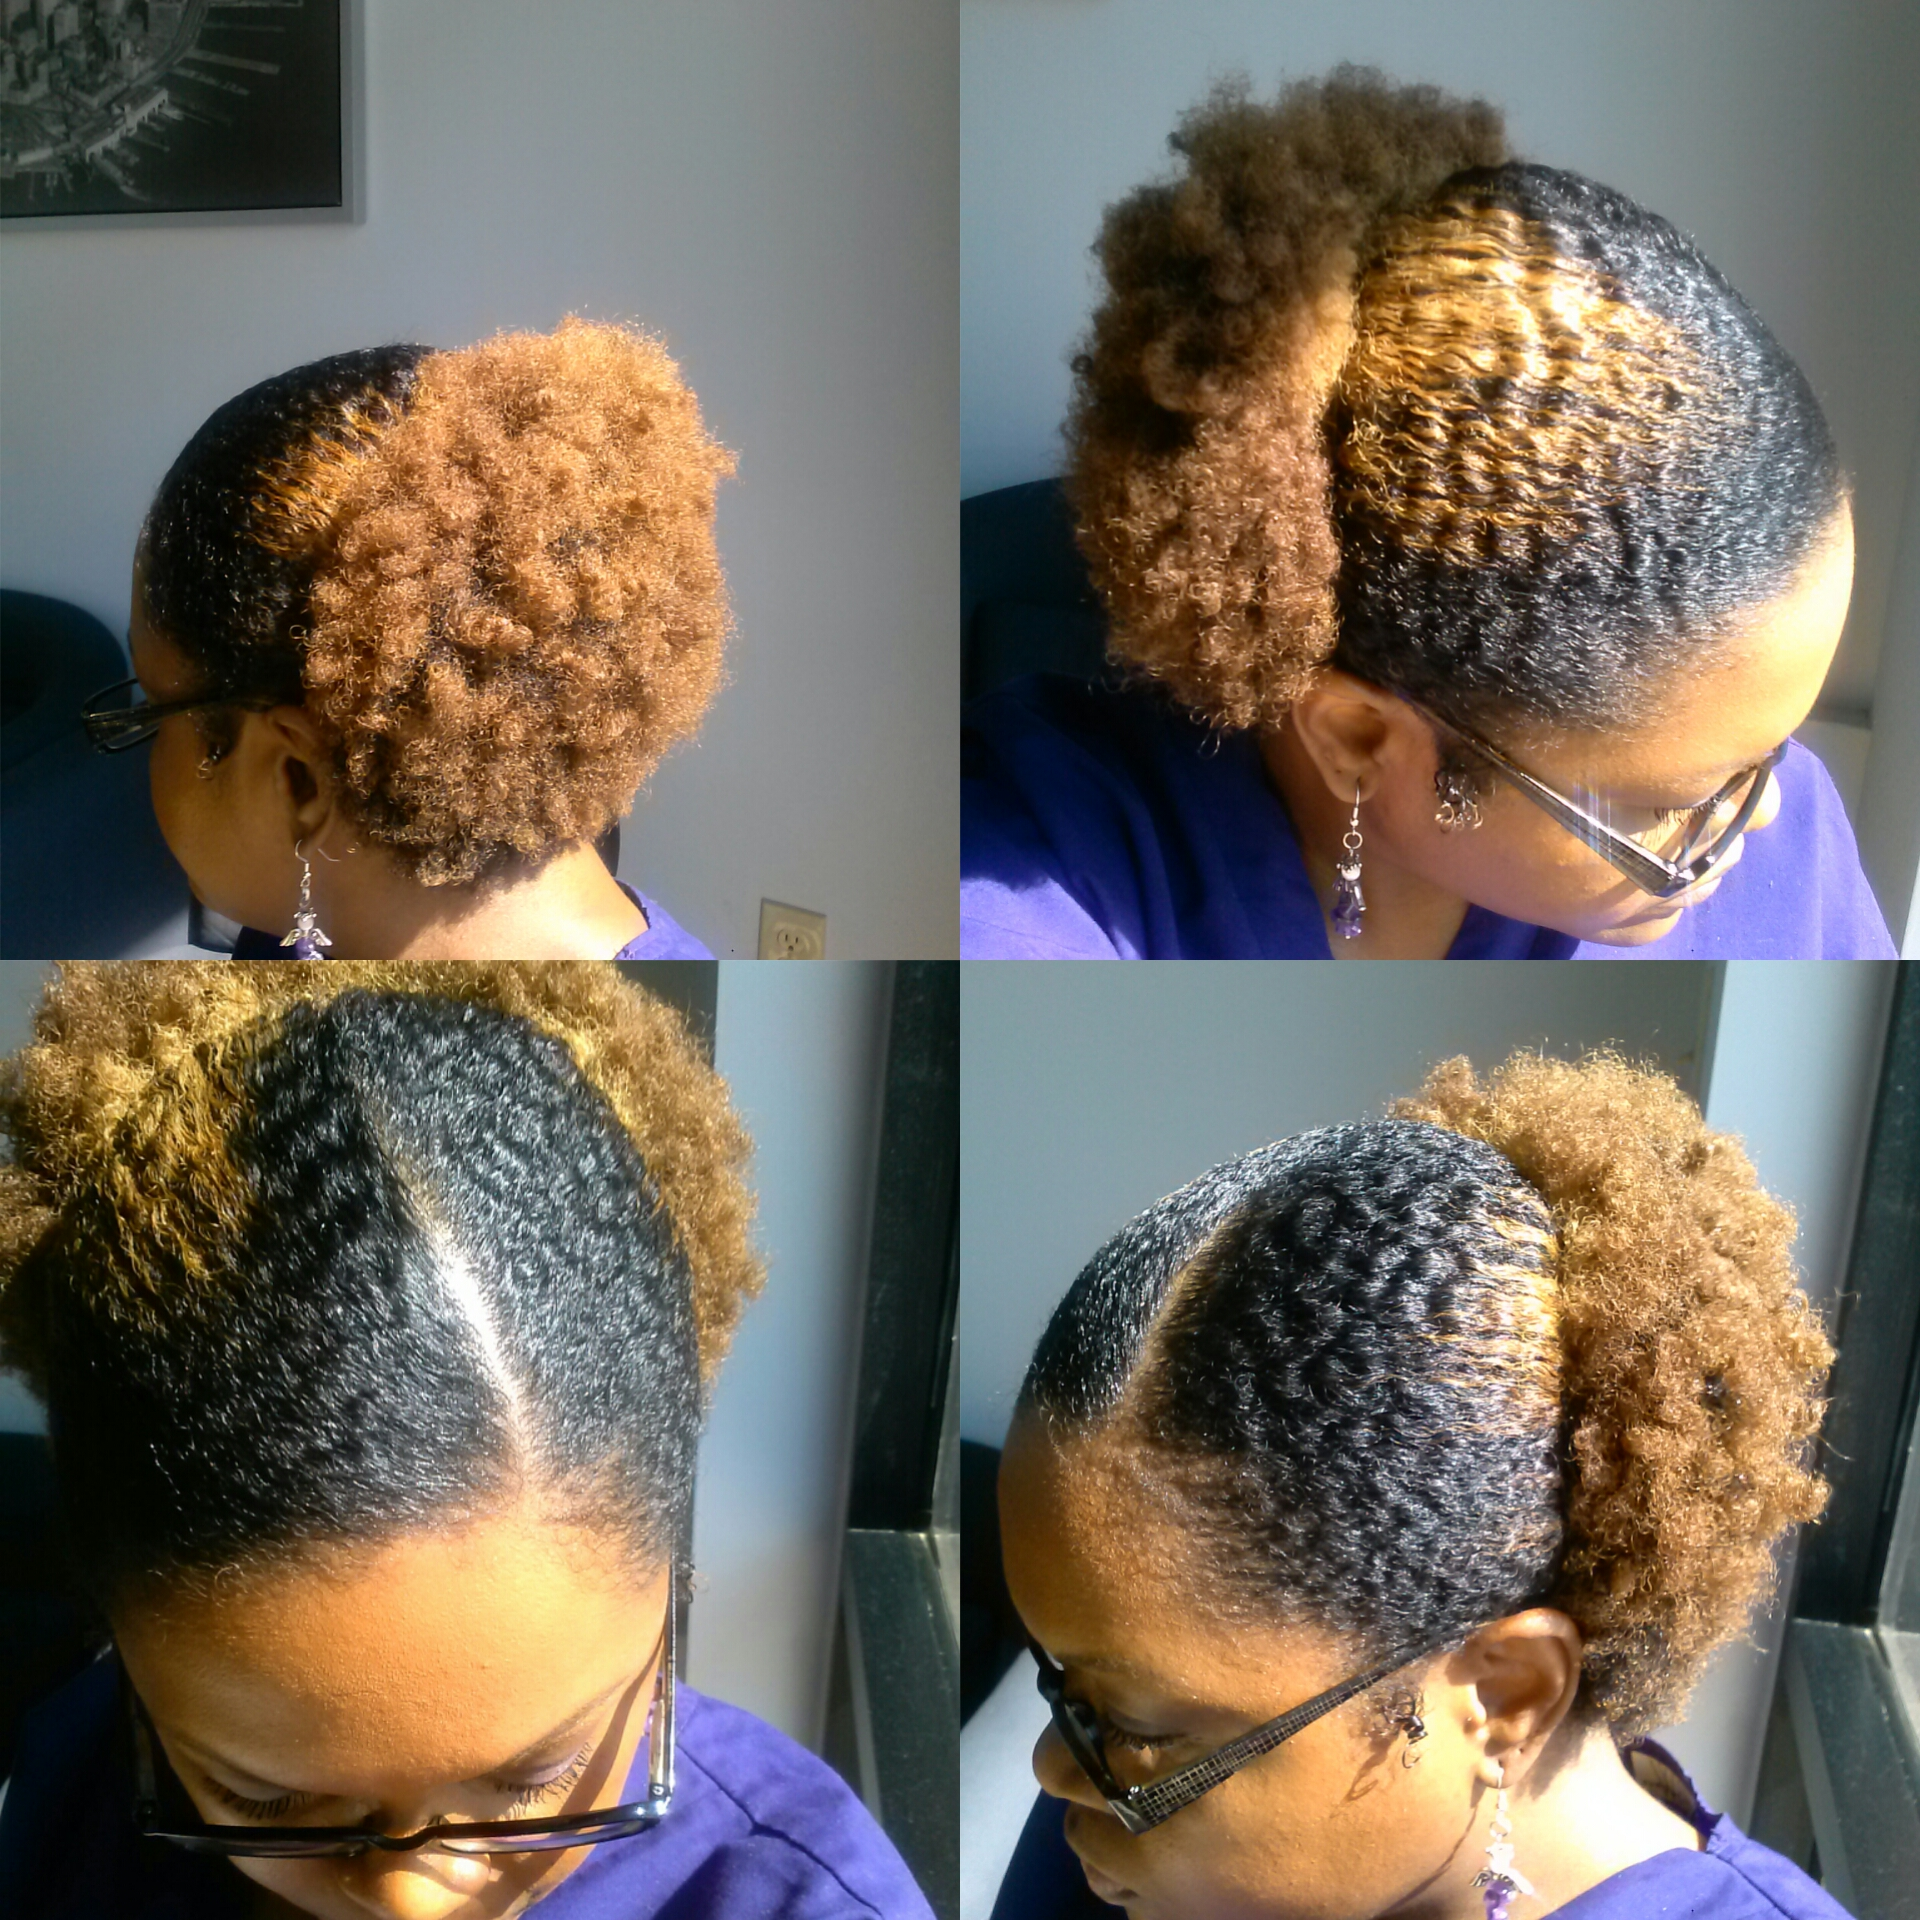 Crochet Braids On Twa : ... protective styles are braids crochet braids yarn wraps and sew ins